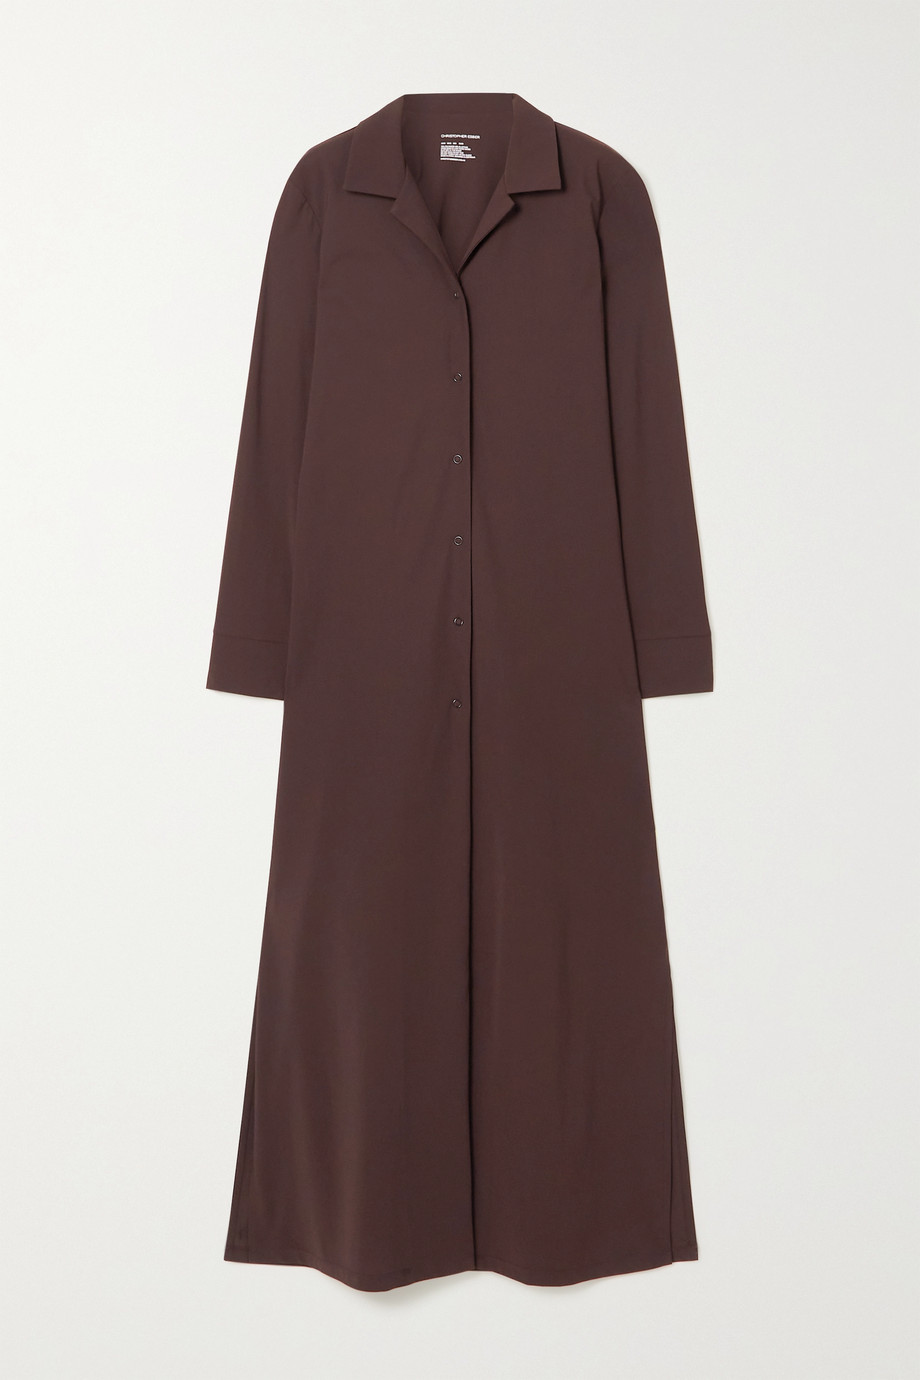 CHRISTOPHER ESBER Stretch-jersey robe